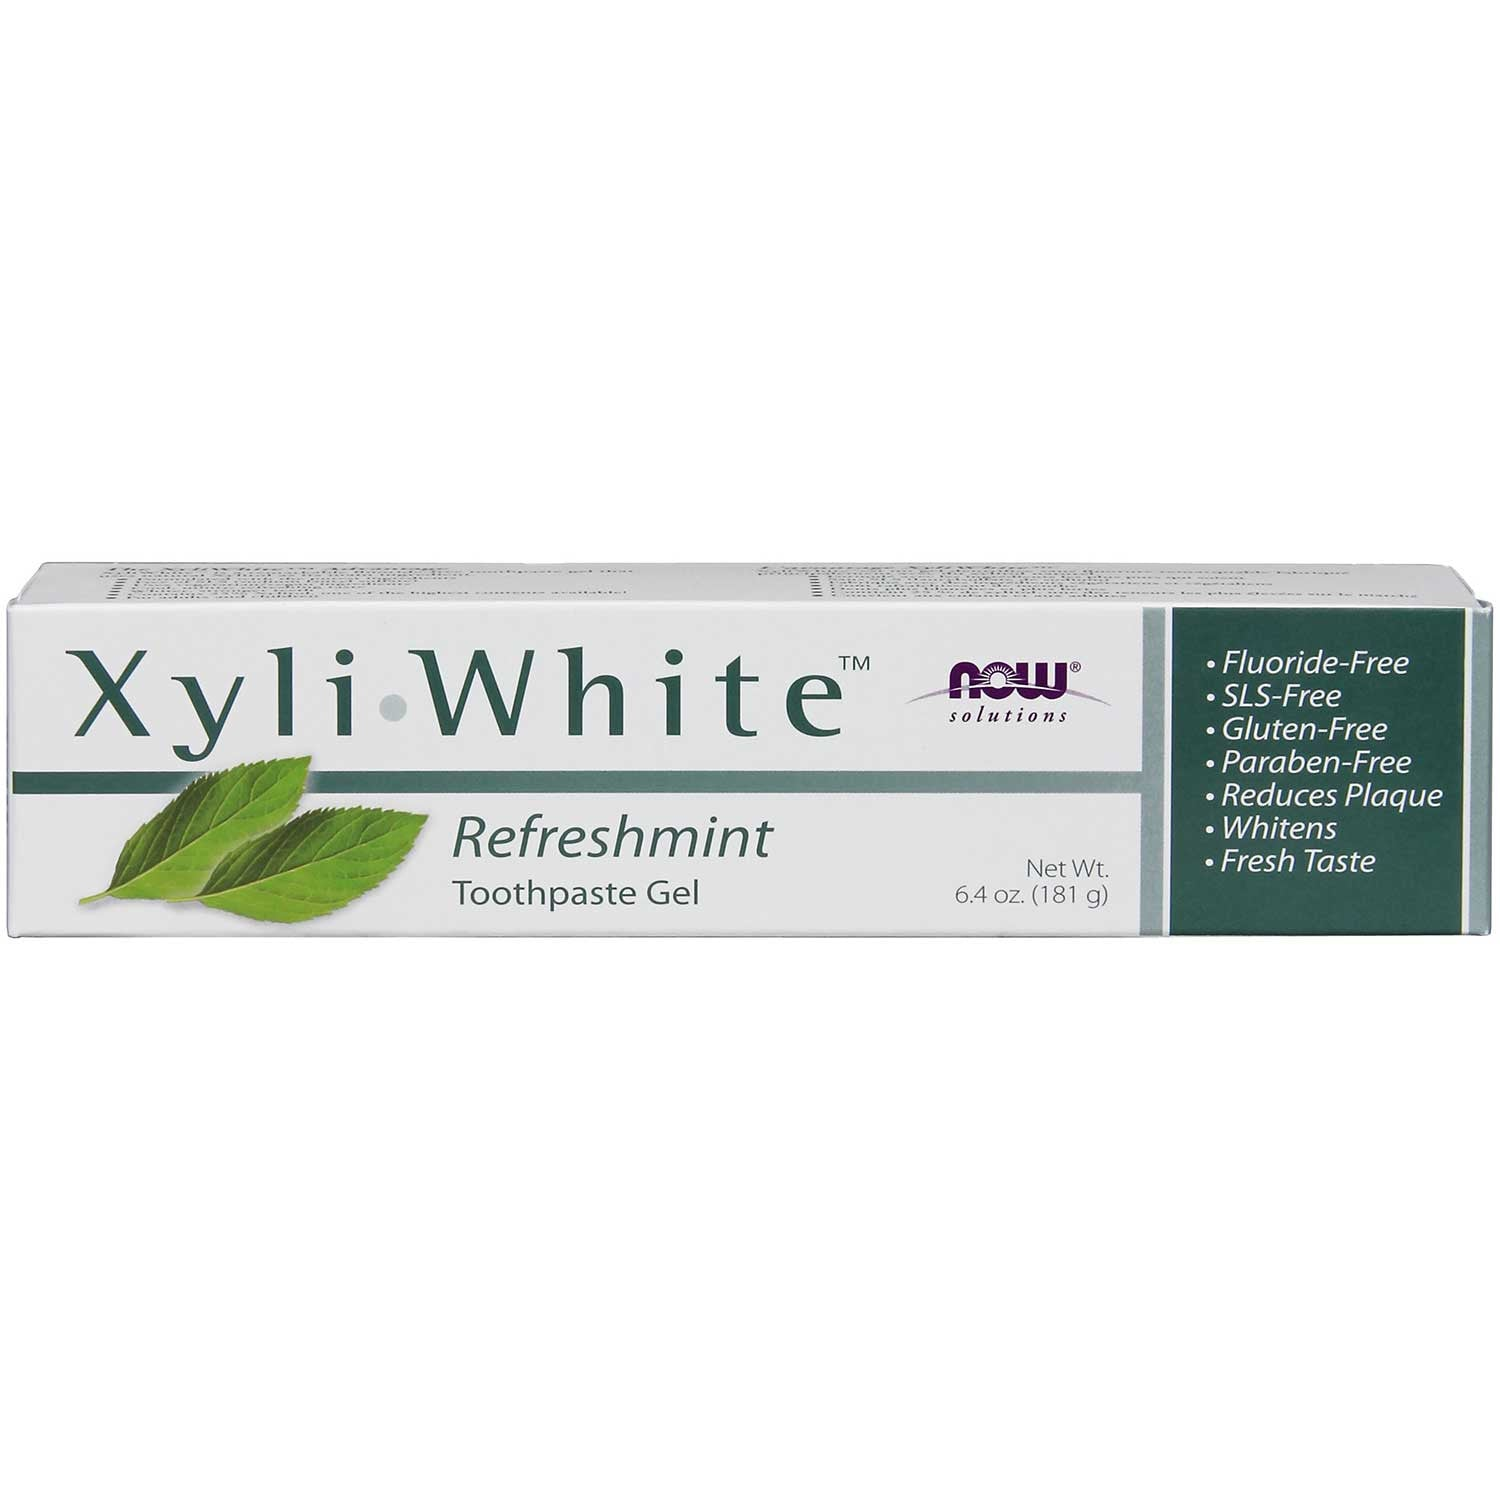 NOW Solutions XyliWhite Toothpaste Gel - Refreshmint (Fluoride-Free), 181 g.